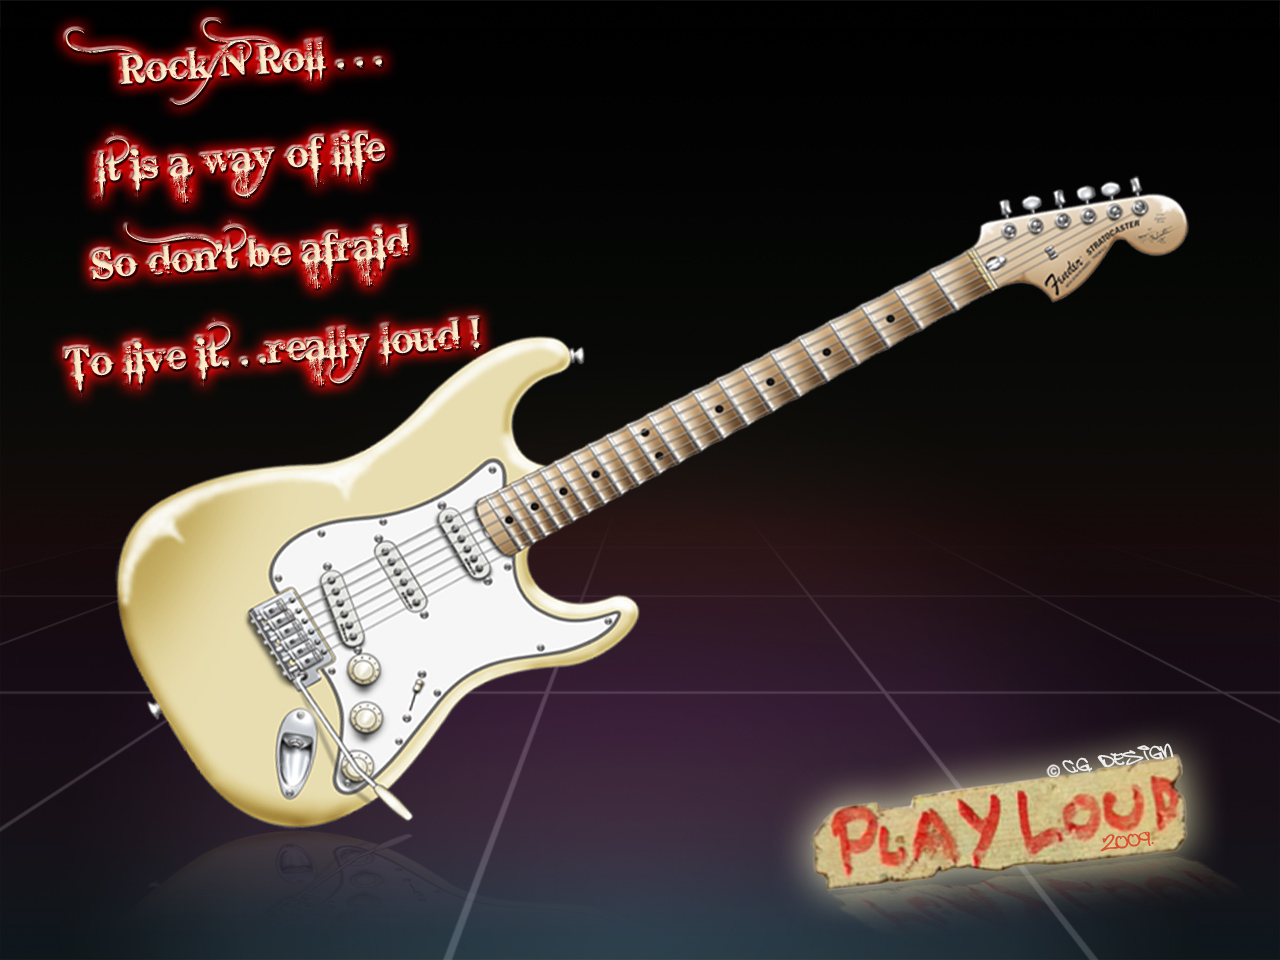 Fender Stratocaster Wallpaper Images & Pictures - Becuo